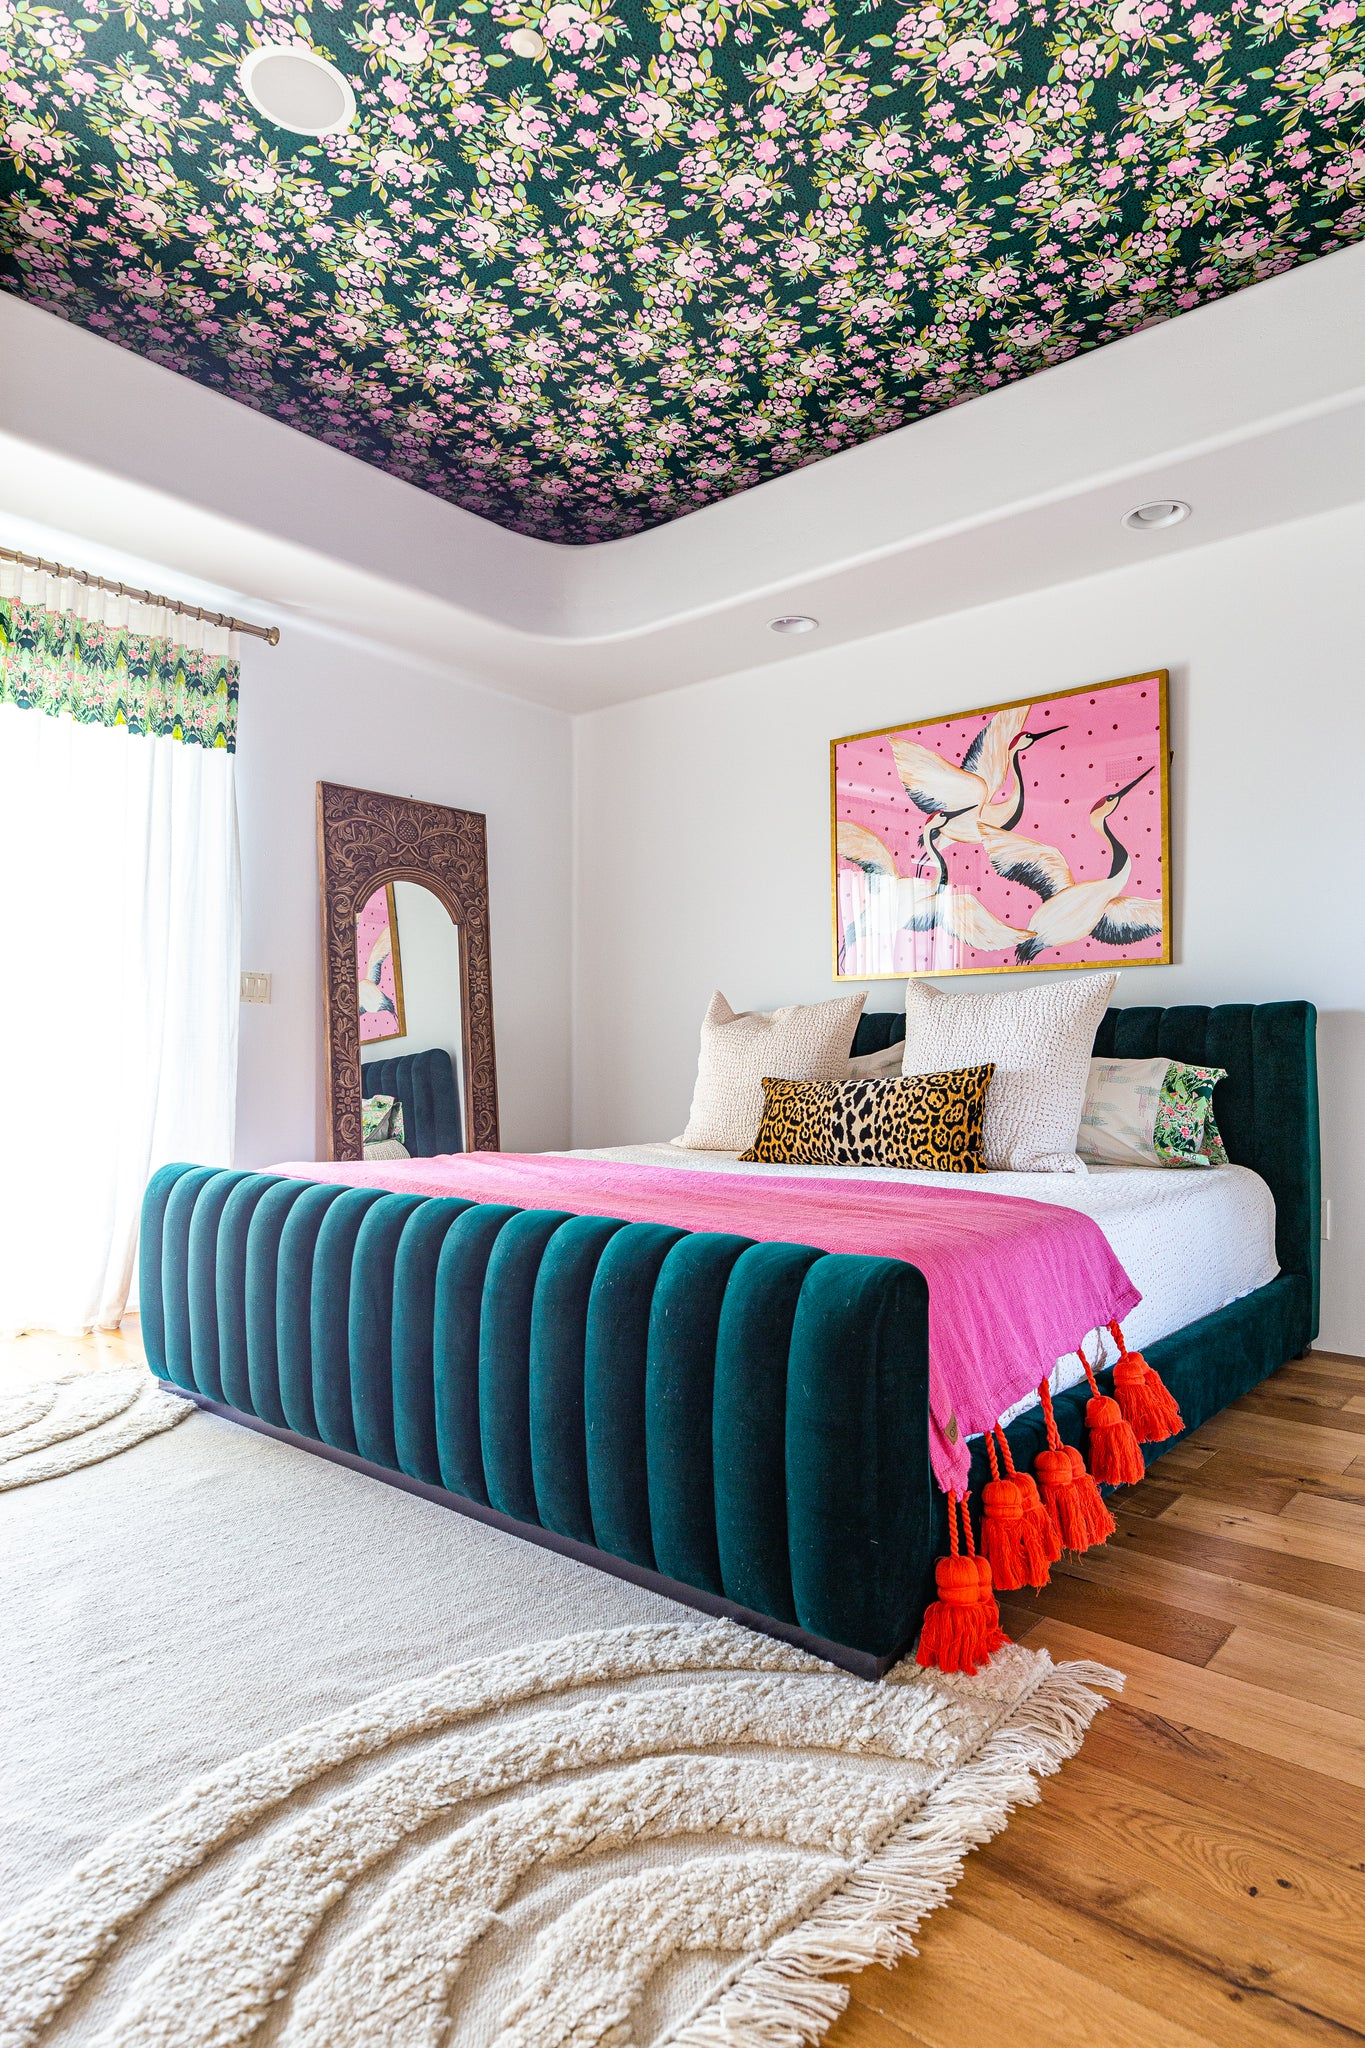 Bari J. Master Bedroom Makeover with Wallpapered ceiling